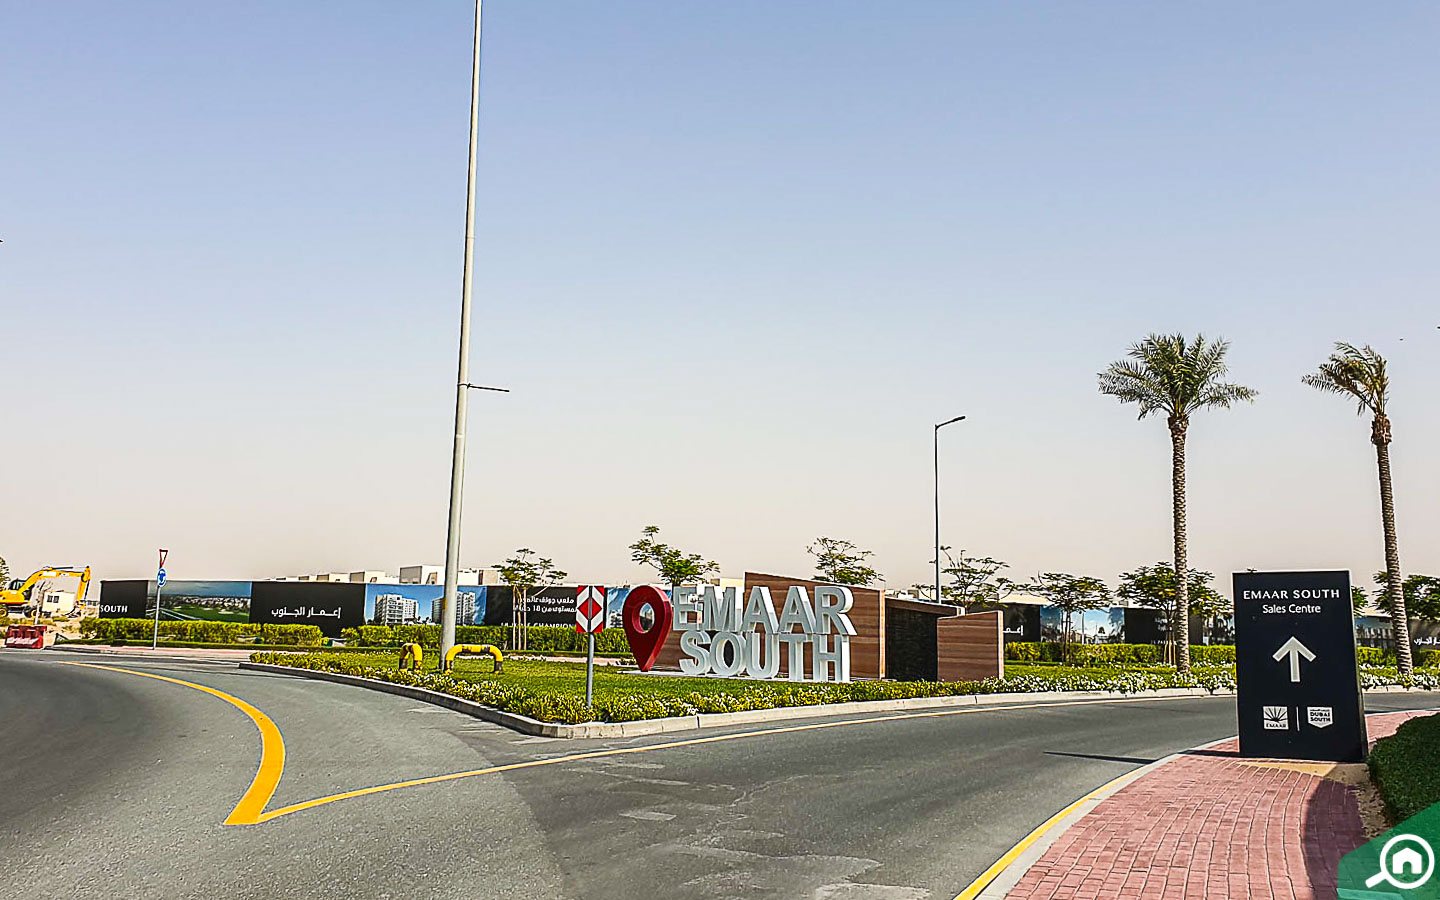 Emaar South entrance, one of the Dubai residential areas near the Expo 2020 site